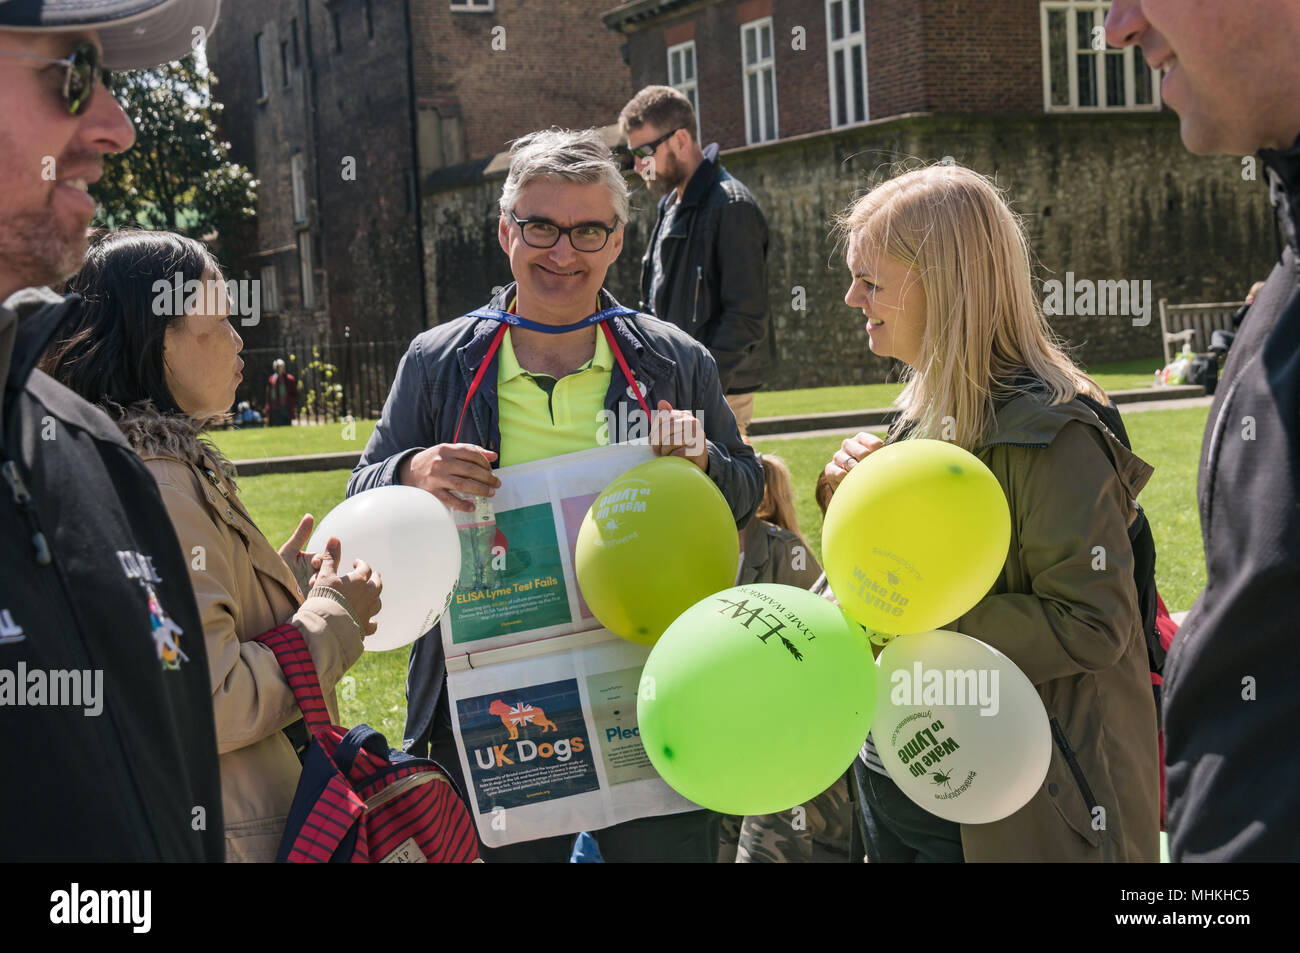 London, UK. 1st May 2018. Campaigners at Parliament highlighted the serious dangers of Lyme Disease from tick bites, calling for public education and for the NHS to abandon useless tests and tackle this killing disease seriously with effective tests and treatments. The danger can be lessened by appropriate clothing on walks through long grass or woods and by prompt and correct removal of ticks attached to skin using a simple device. Credit: Peter Marshall/Alamy Live News - Stock Image